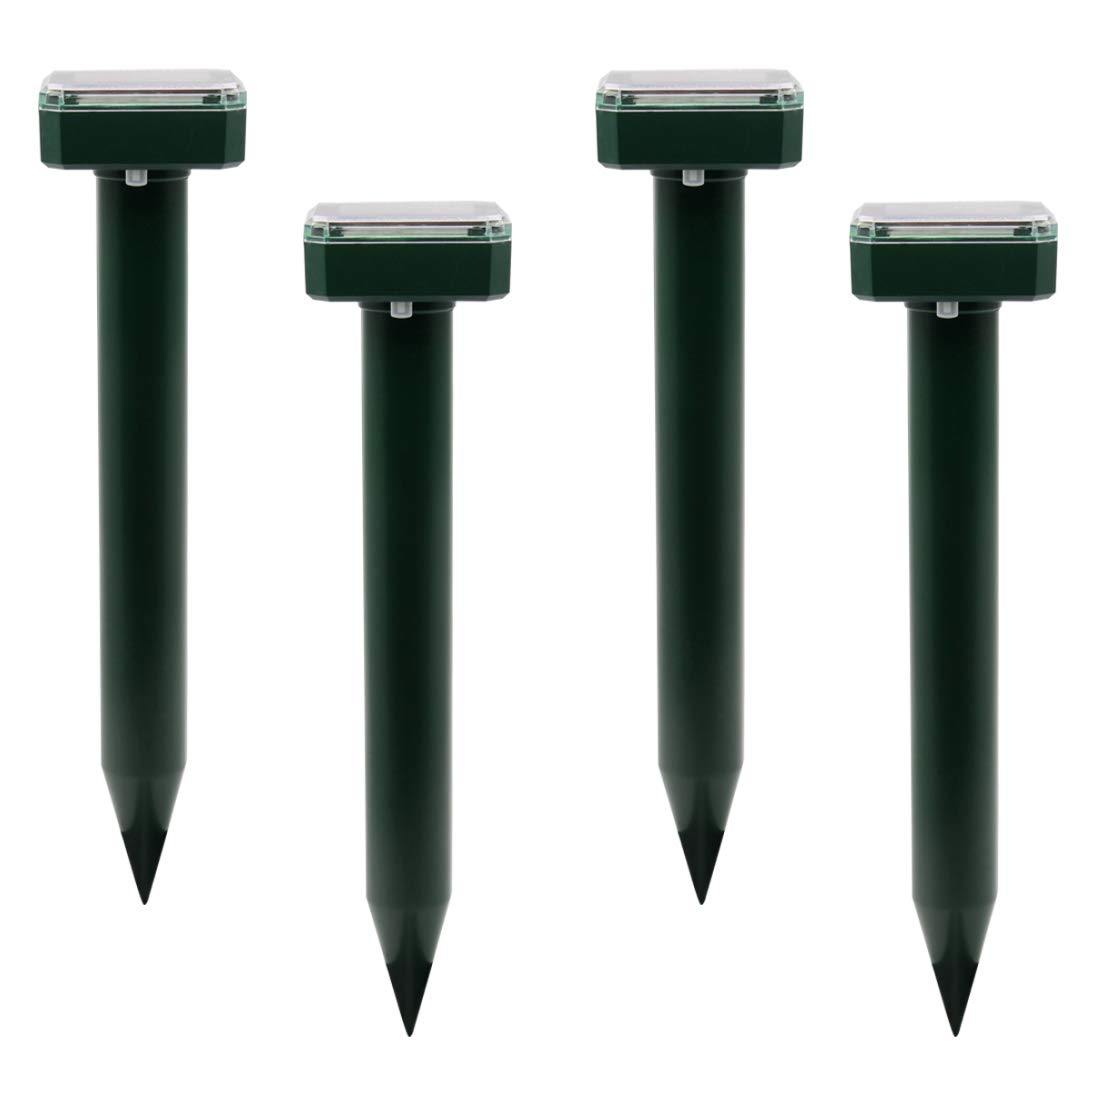 XIAXIA 4pack Mole Repeller Solar Powered Repel Voles/Gopher/ Mice/Snake/ Chipmunk with Outdoor Ultrasonic Rodent Repellent. Rid Moles in Lawn Garden. Pest Control, High Frequency in Ground Sonic Pulse